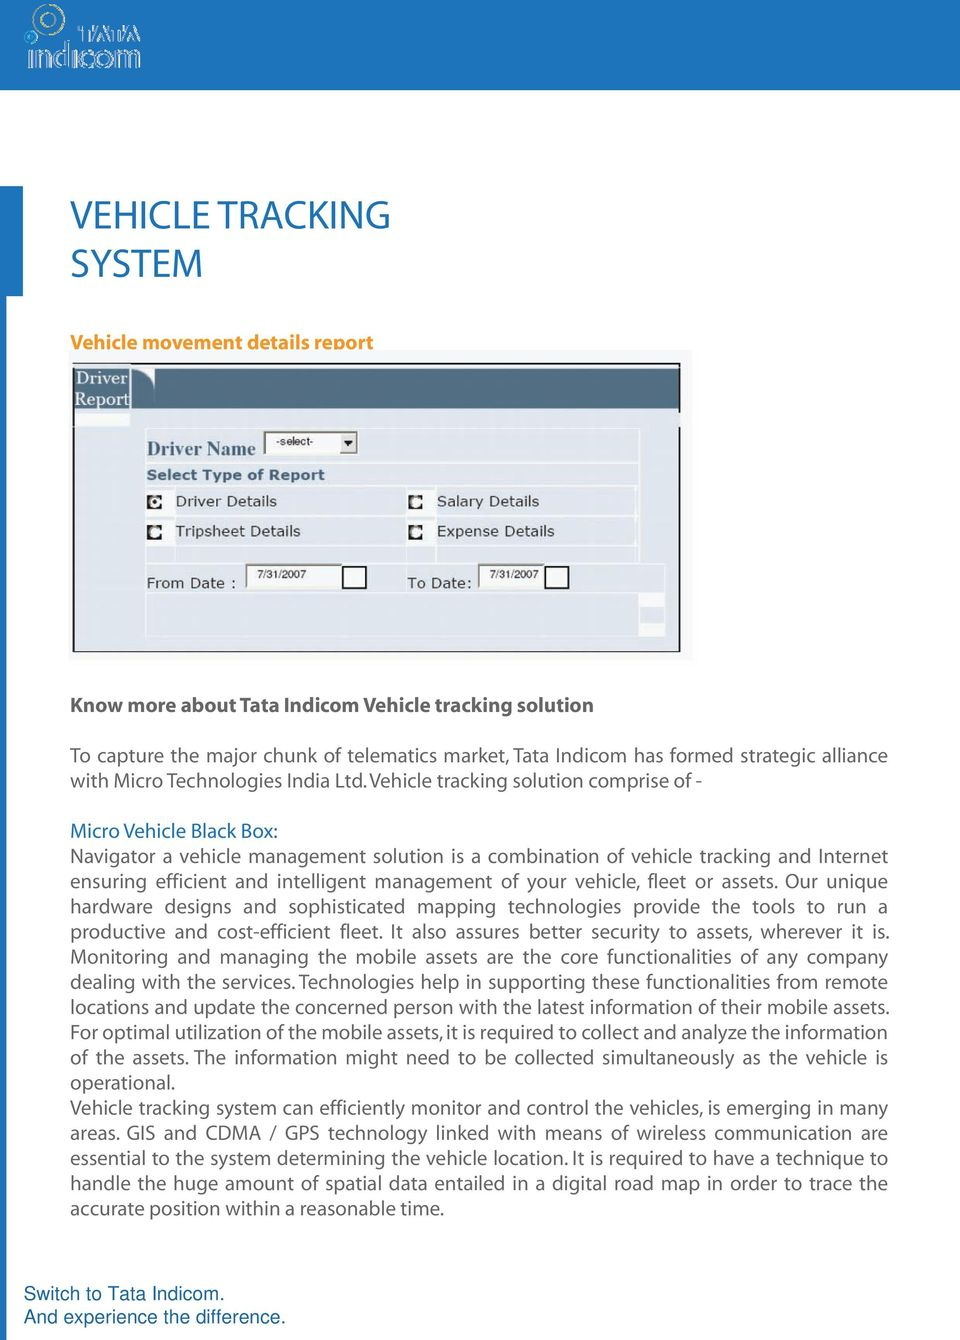 Vehicle tracking solution comprise of - Micro Vehicle Black Box: Navigator a vehicle management solution is a combination of vehicle tracking and Internet ensuring efficient and intelligent